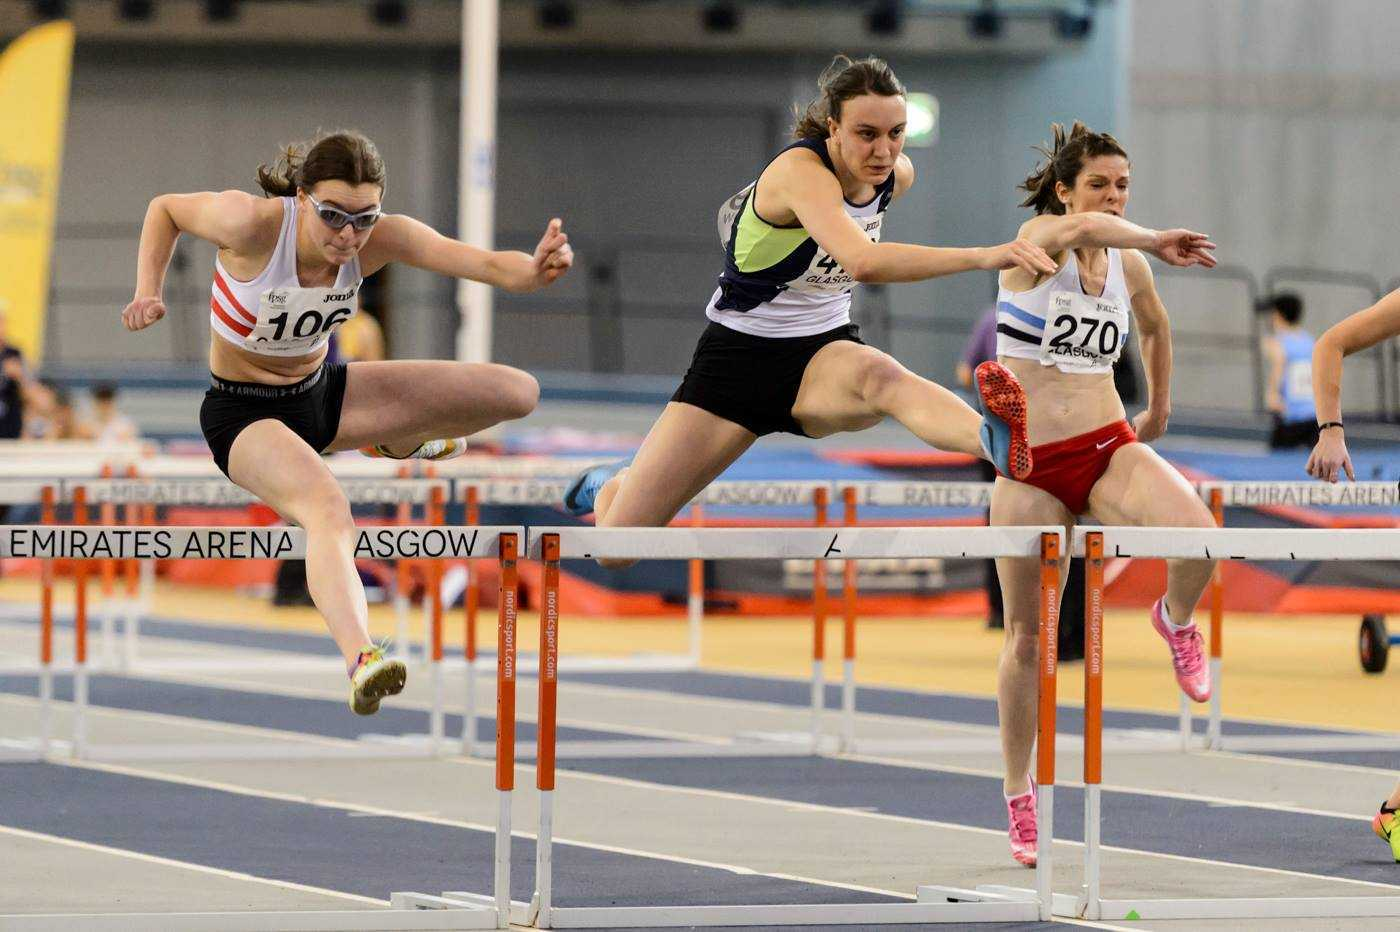 Scottish Athletics leads the way on gender equality in sport